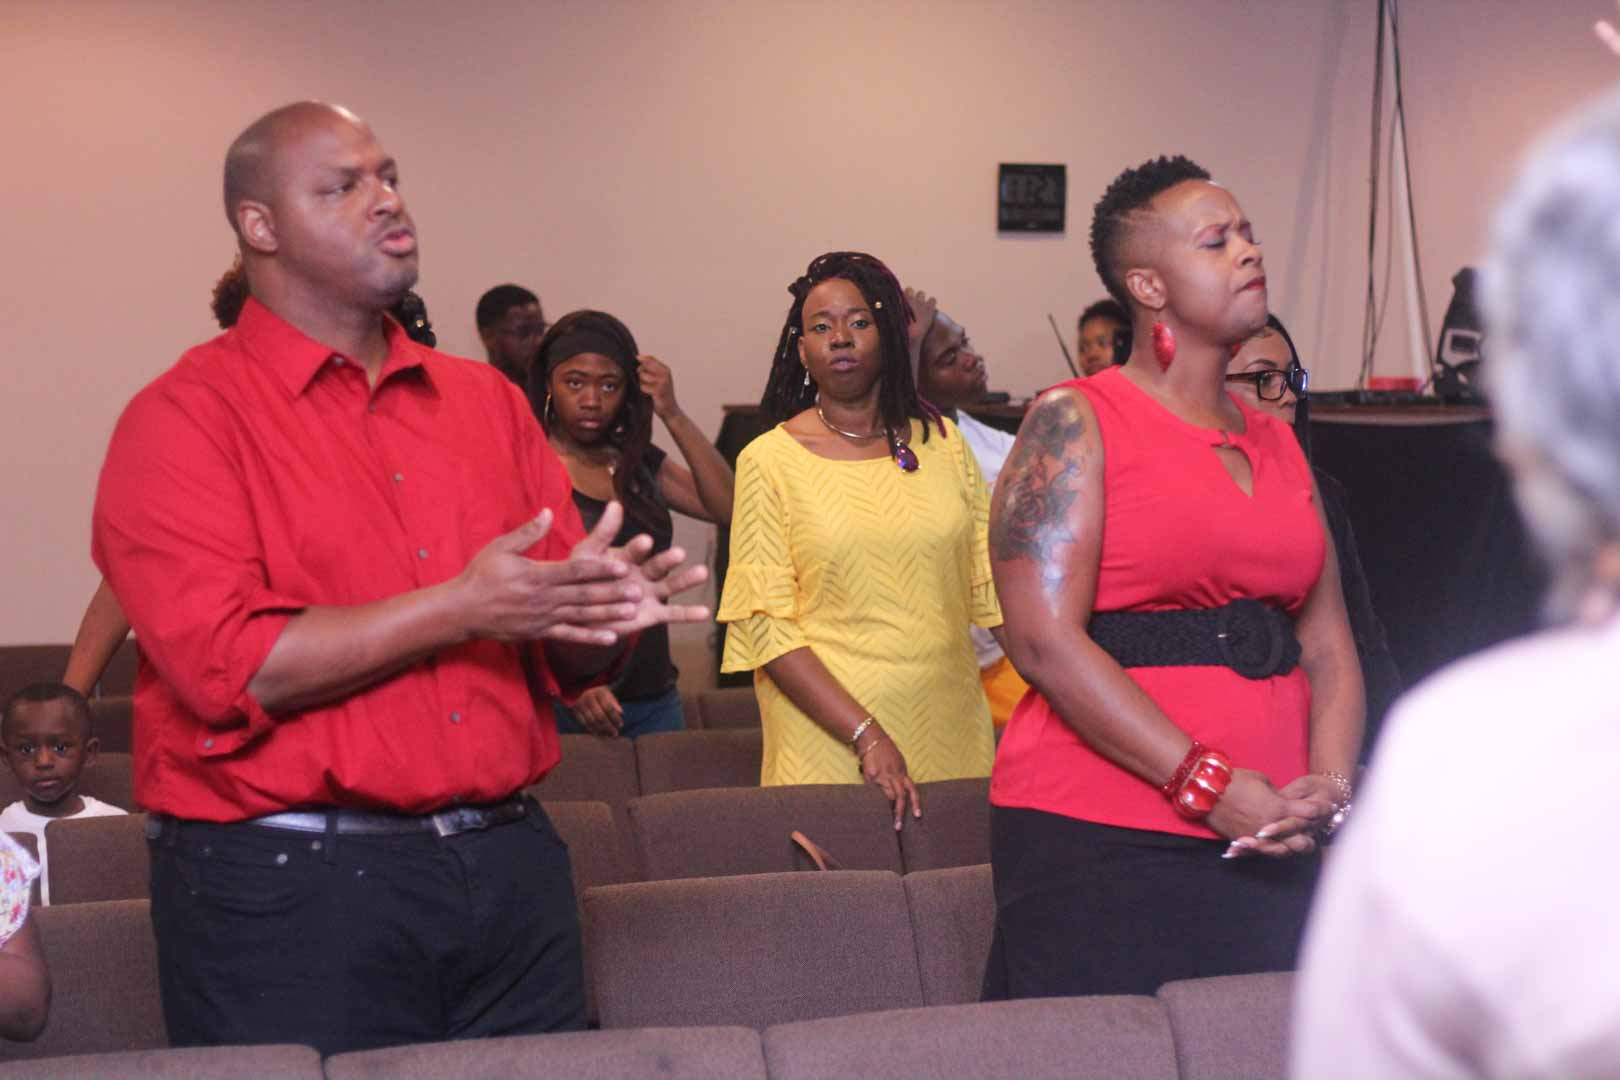 fathershouse-kingdom-ministries-church-in-jacksonville-florida0032